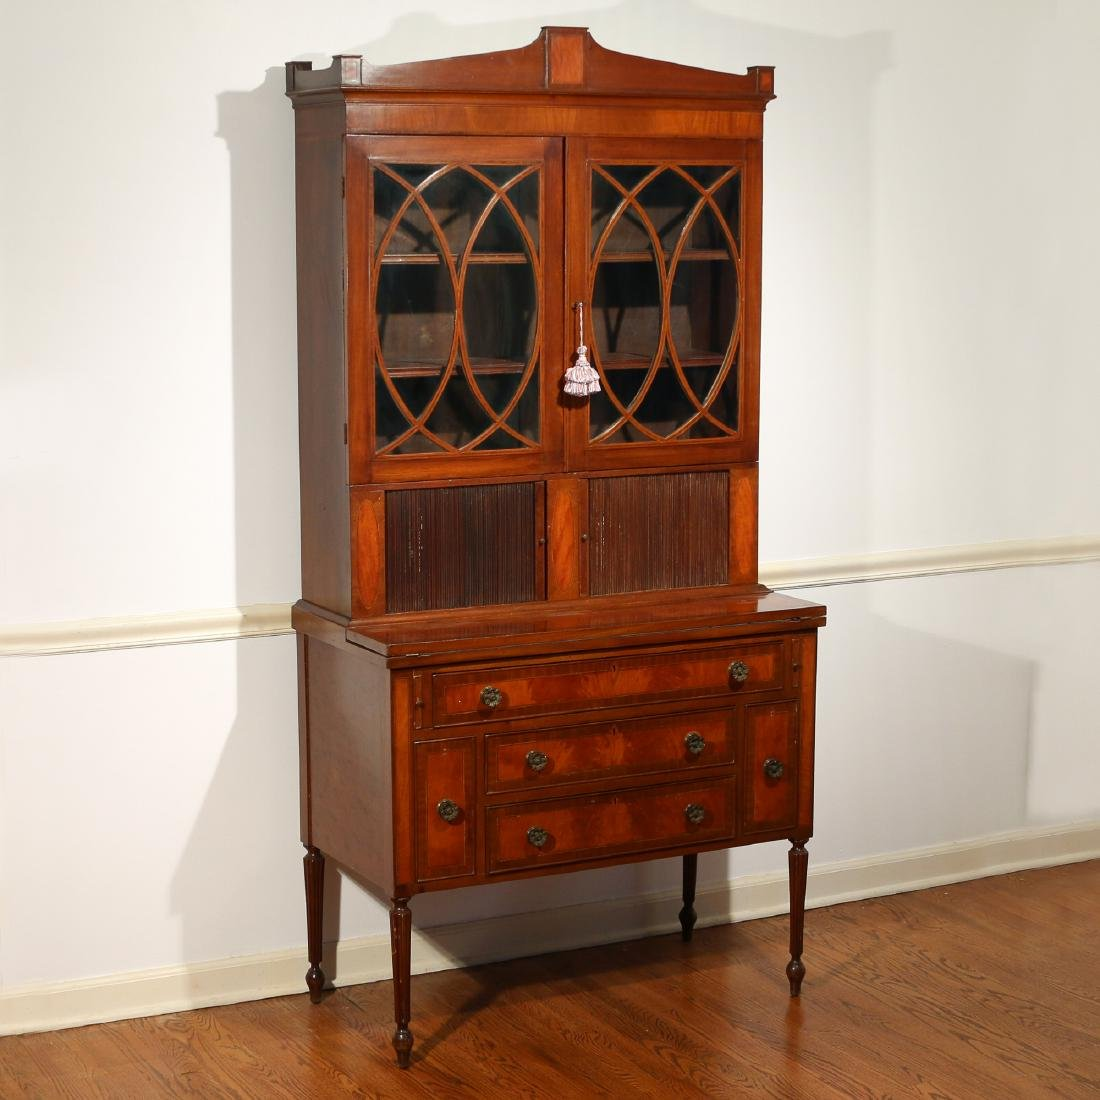 FEDERAL INLAID-MAHOGANY SECRETARY BOOKCASE